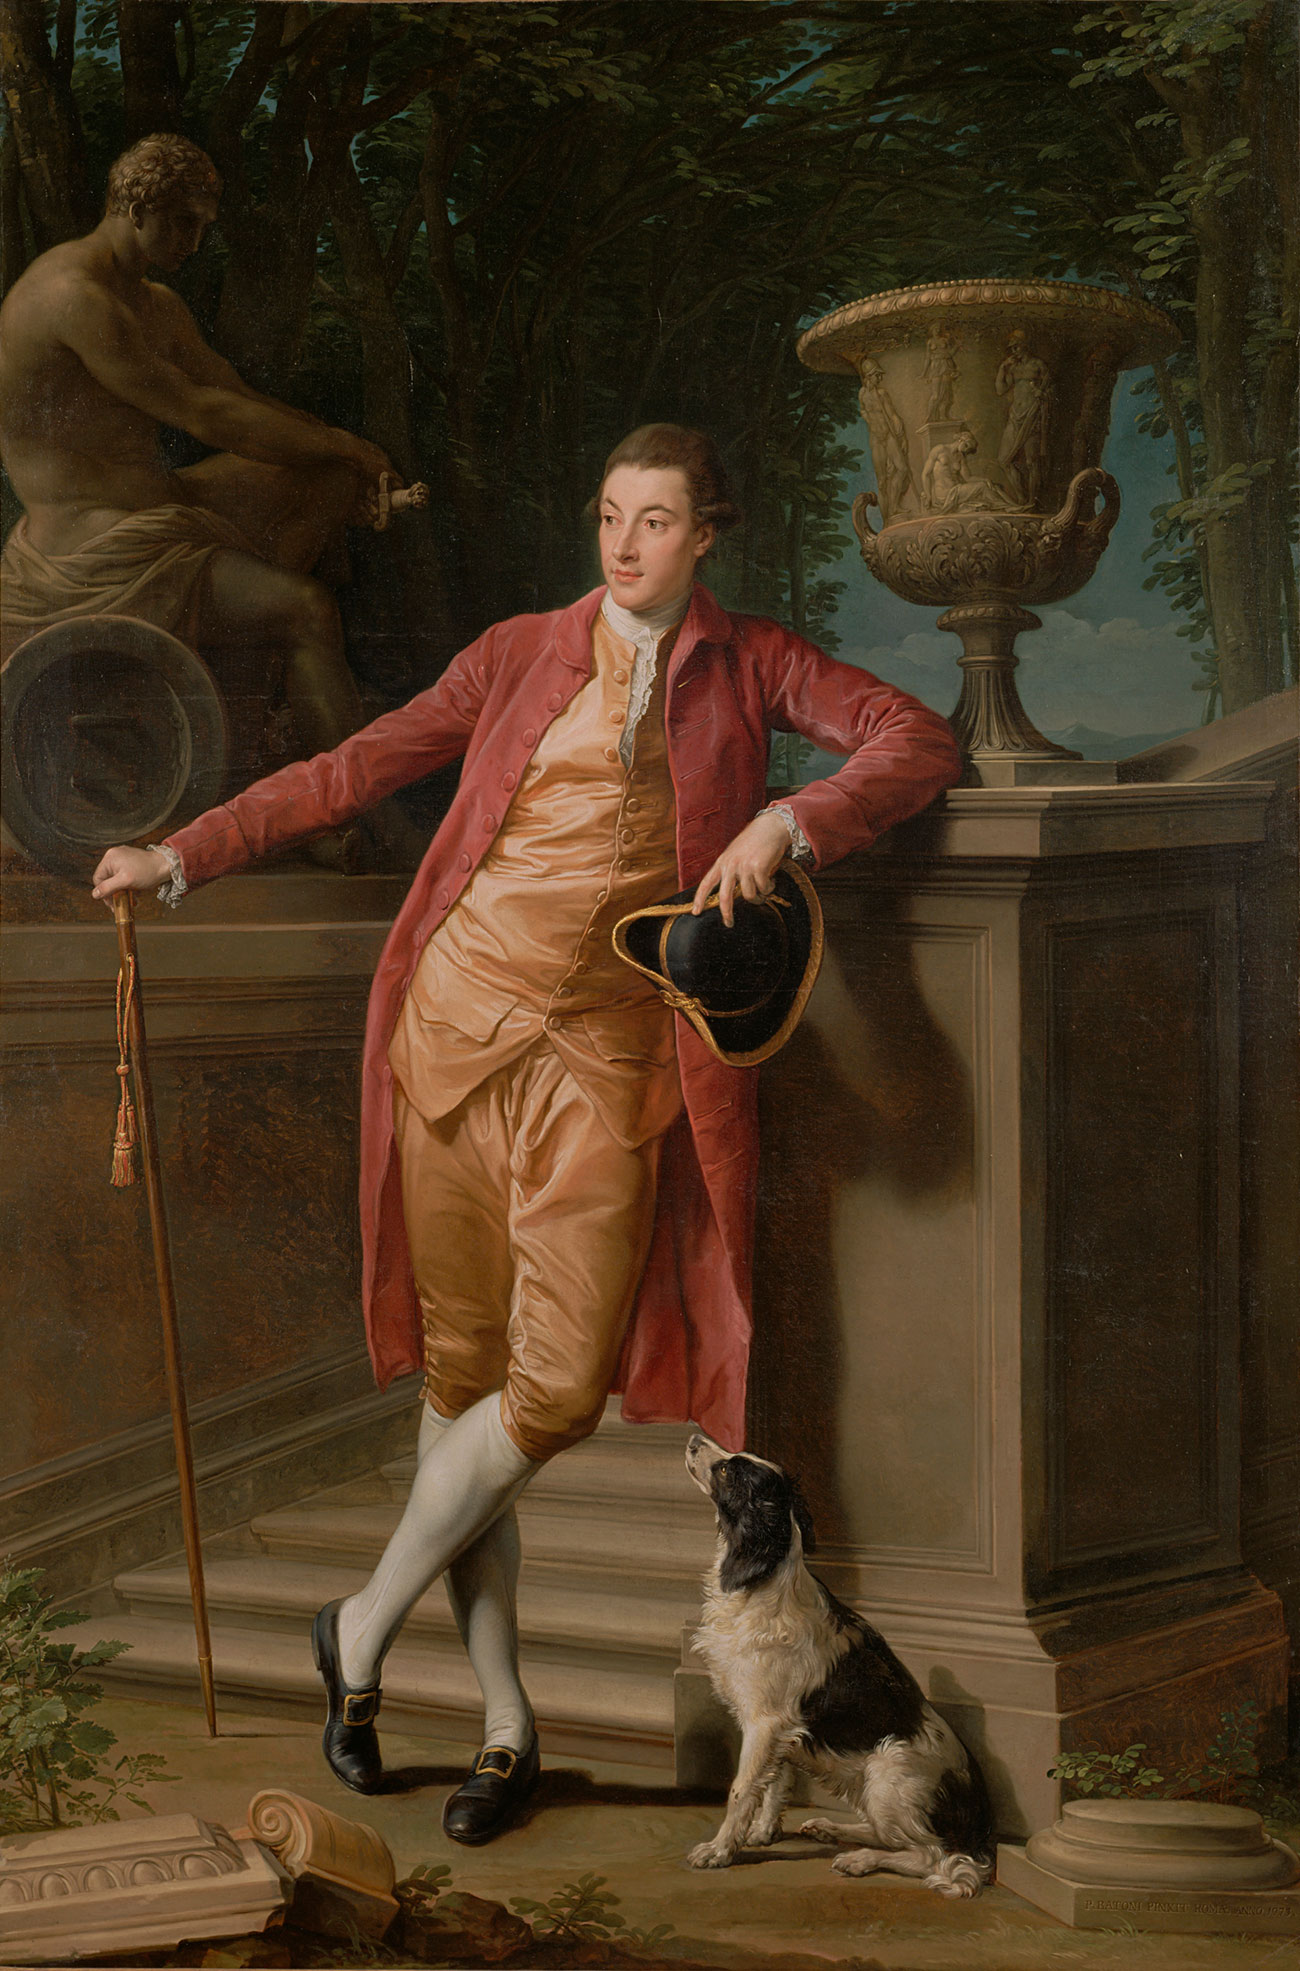 Full figure of a man in a long red coat and pink breeches leaning against a pillar and holding a tri-corner hat. A black and white dog sits at his feet.